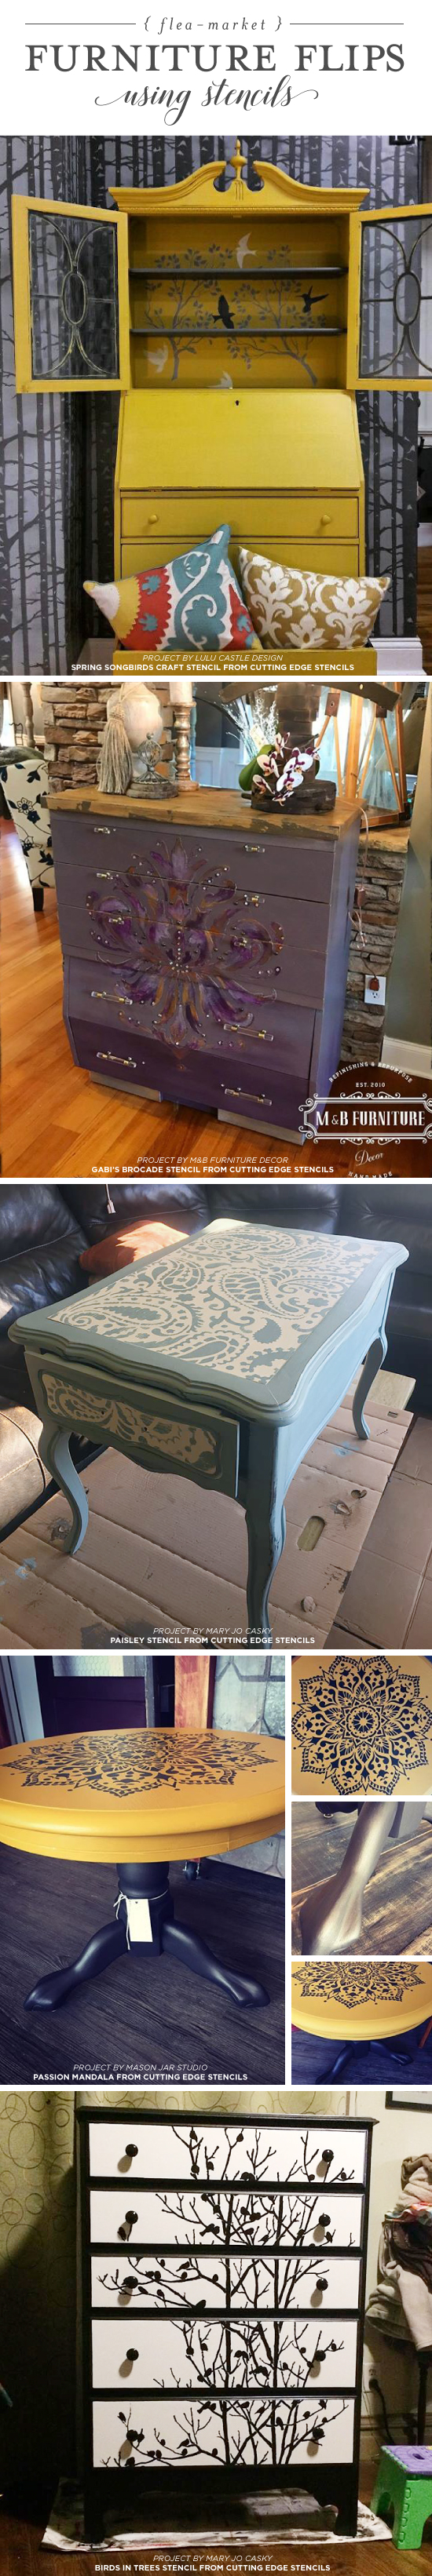 Cutting Edge Stencils shares DIY stenciled furniture ideas using trendy stencil designs. http://www.cuttingedgestencils.com/wall-stencils-stencil-designs.html